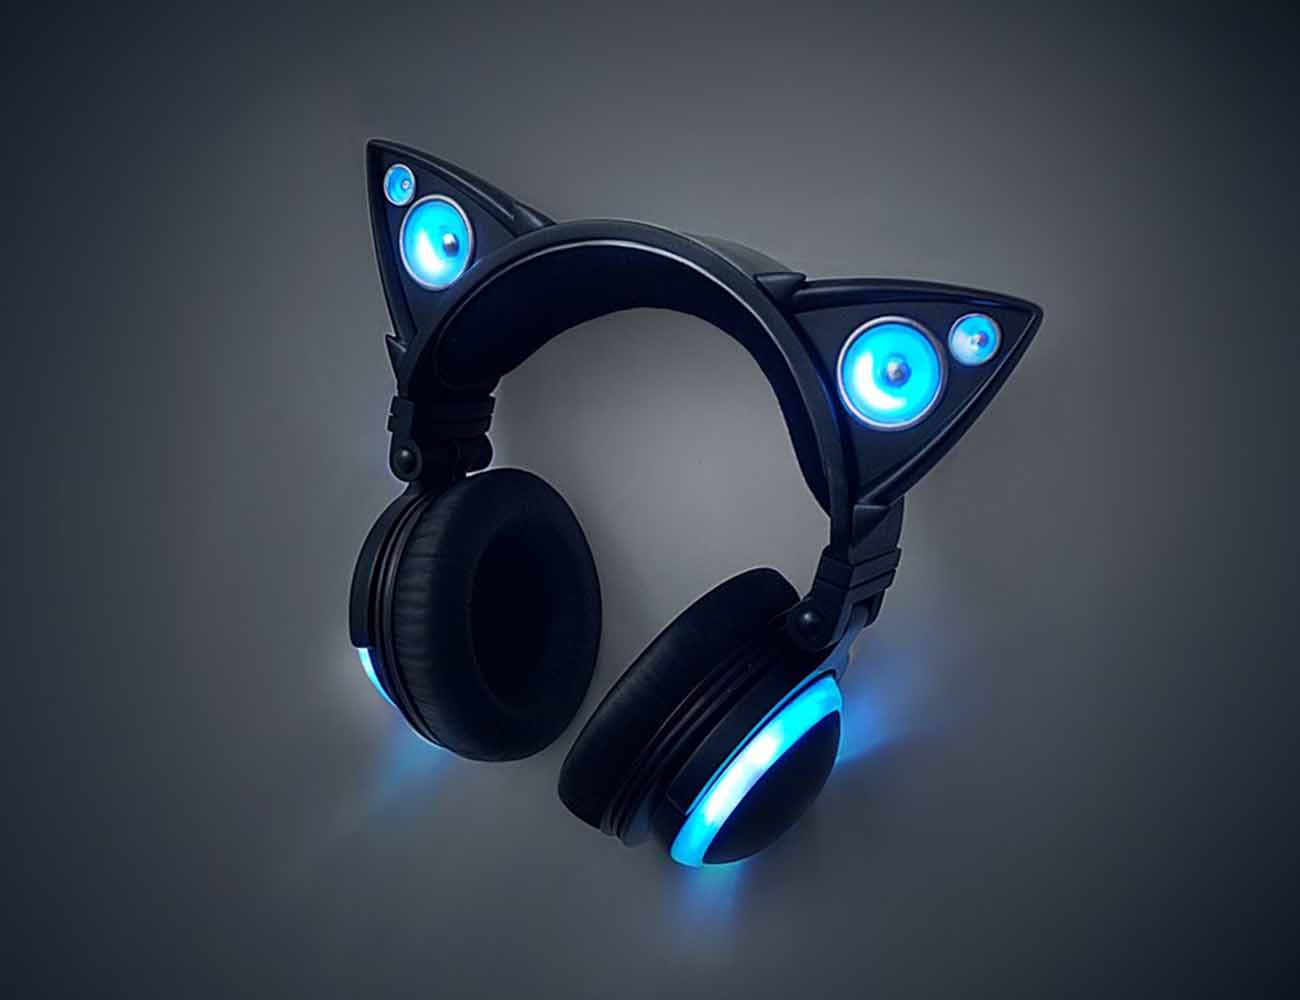 Cat Ears Headphones Axent Wear